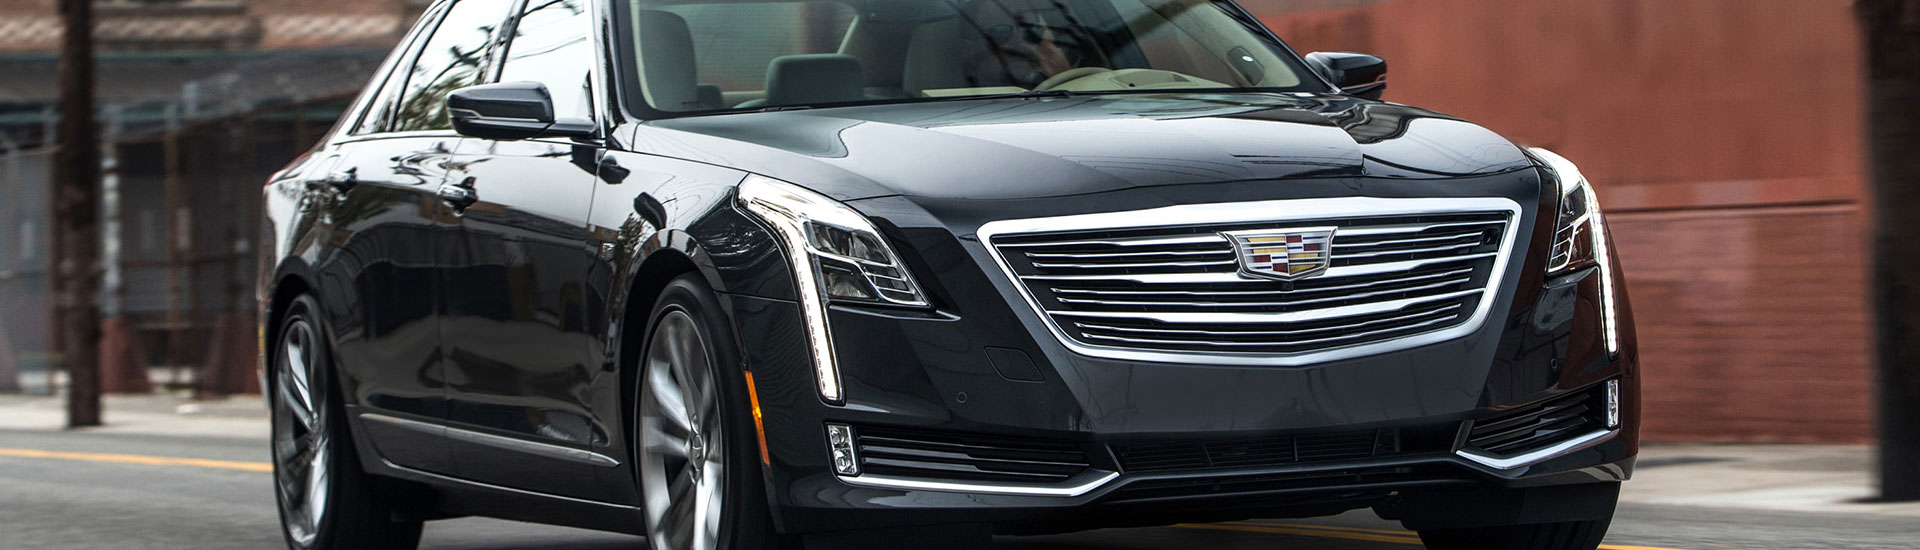 Cadillac Aftermarket Accessories, Dash Kits & Tints